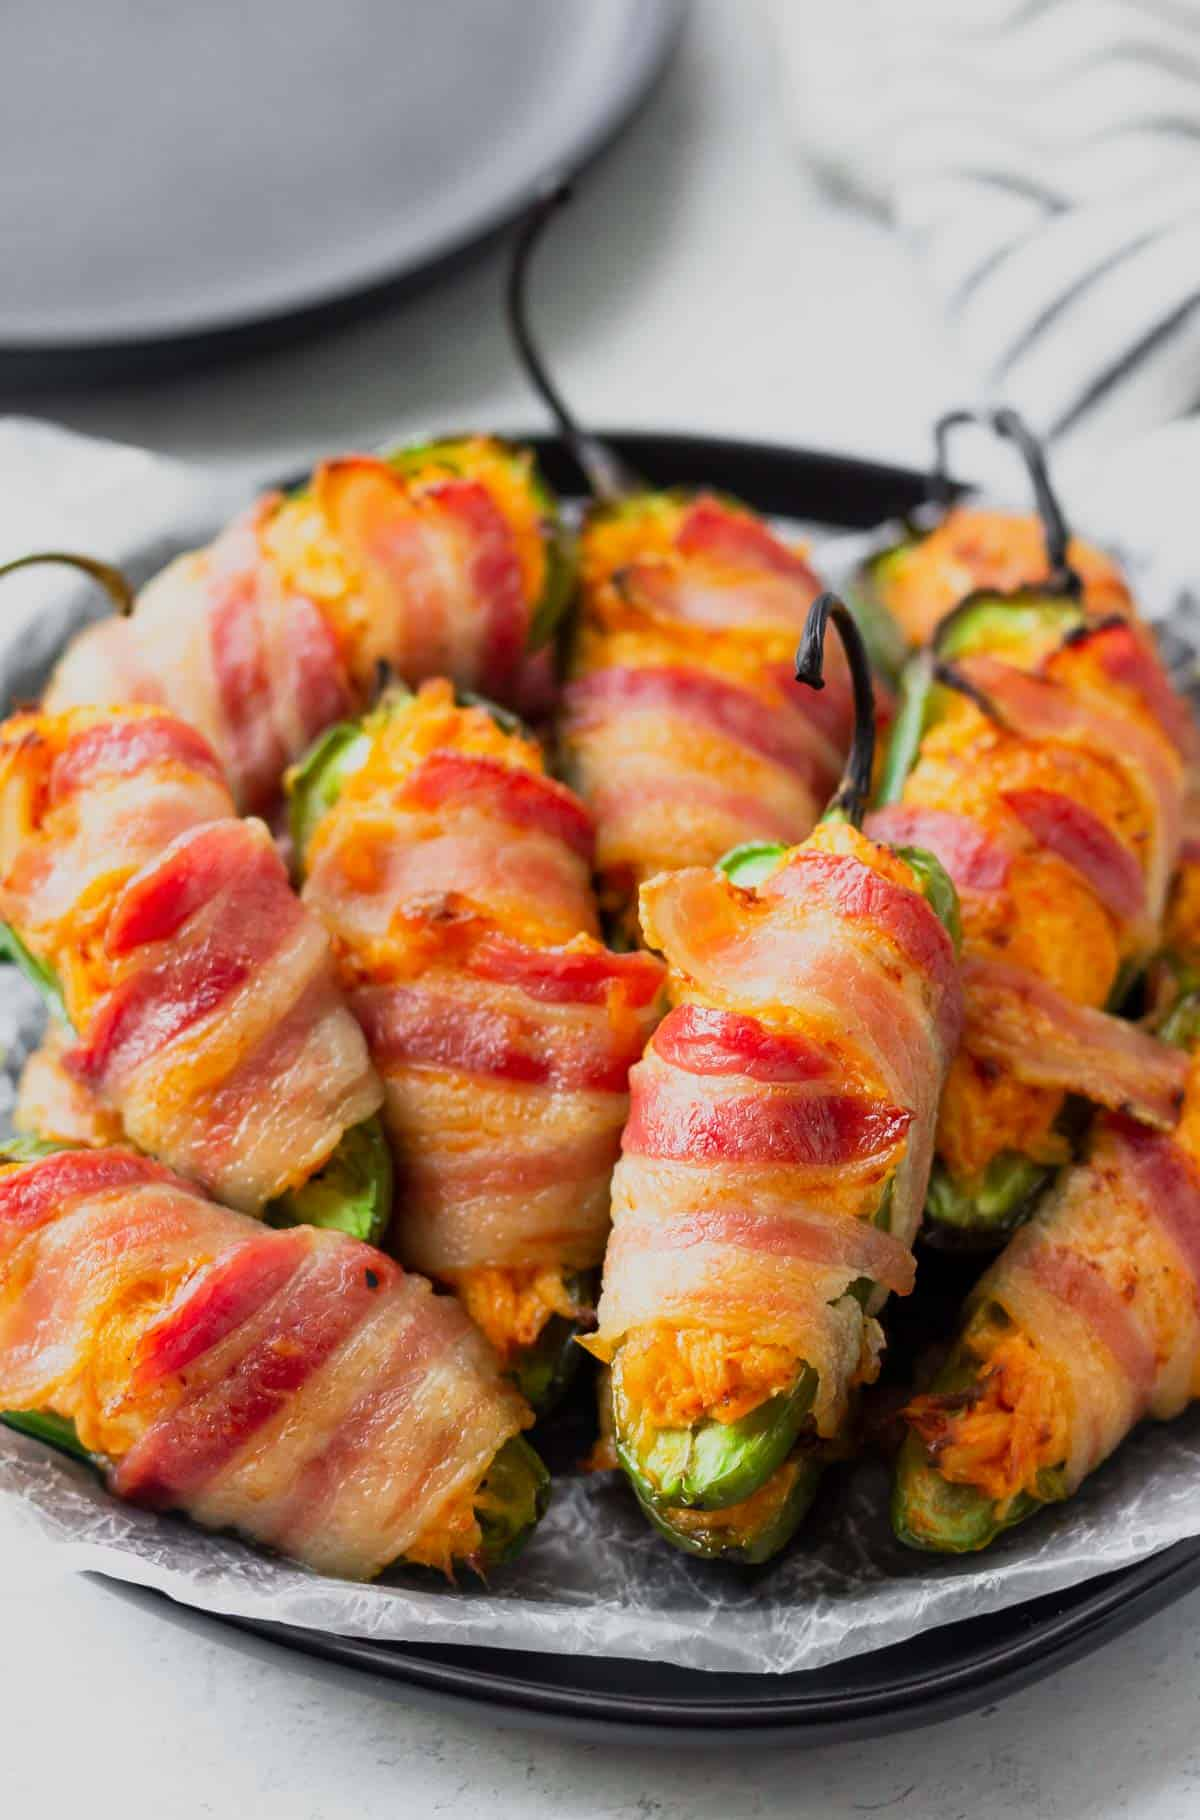 Buffalo Chicken Jalapeno Poppers wrapped in bacon on a black plate with a second plate in the background